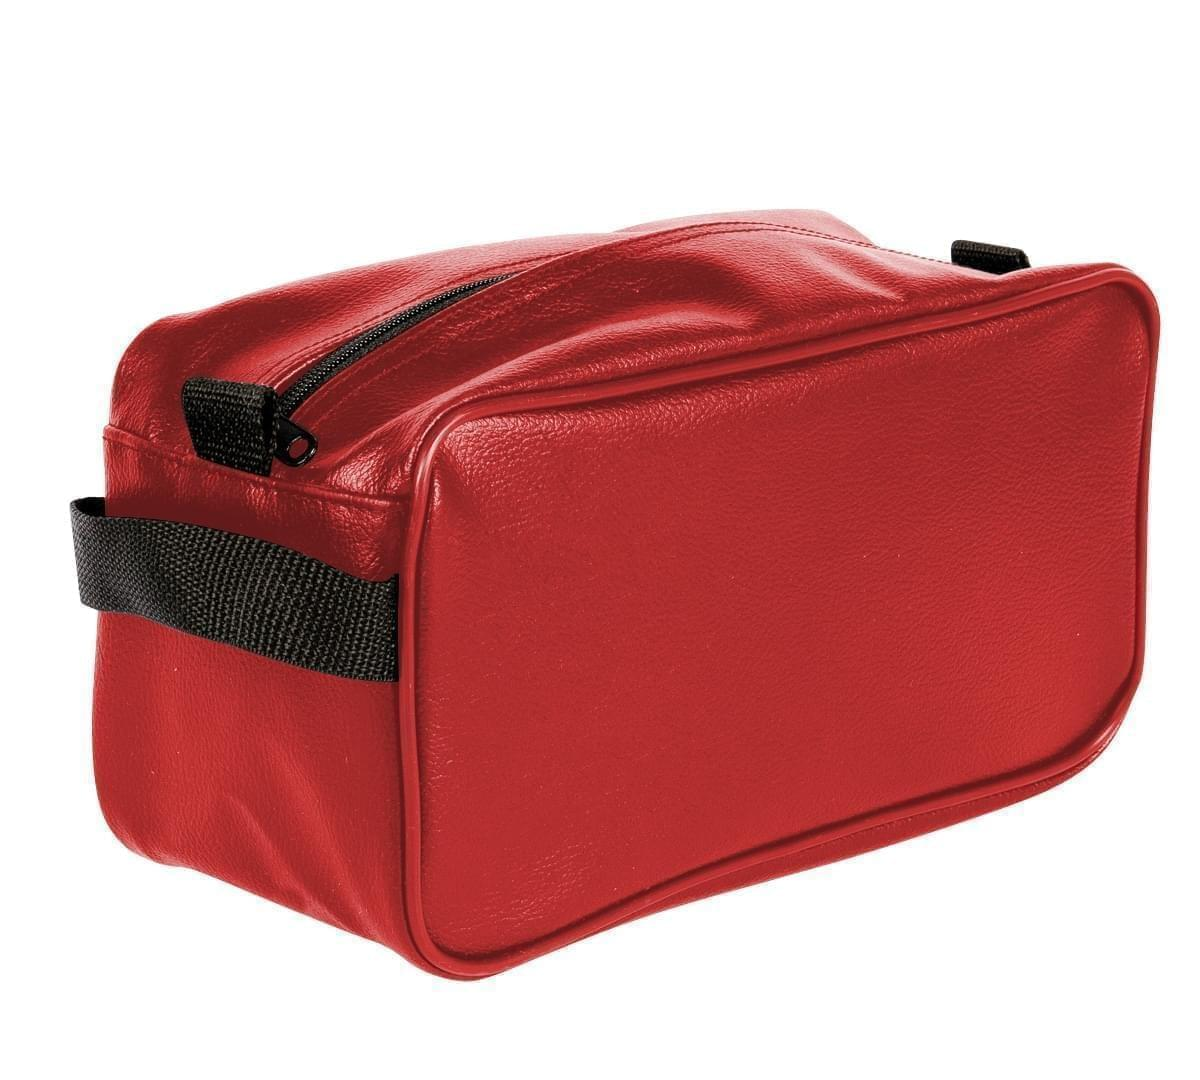 USA Made Cosmetic & Toiletry Cases, Red-Black, 3000996-AZR